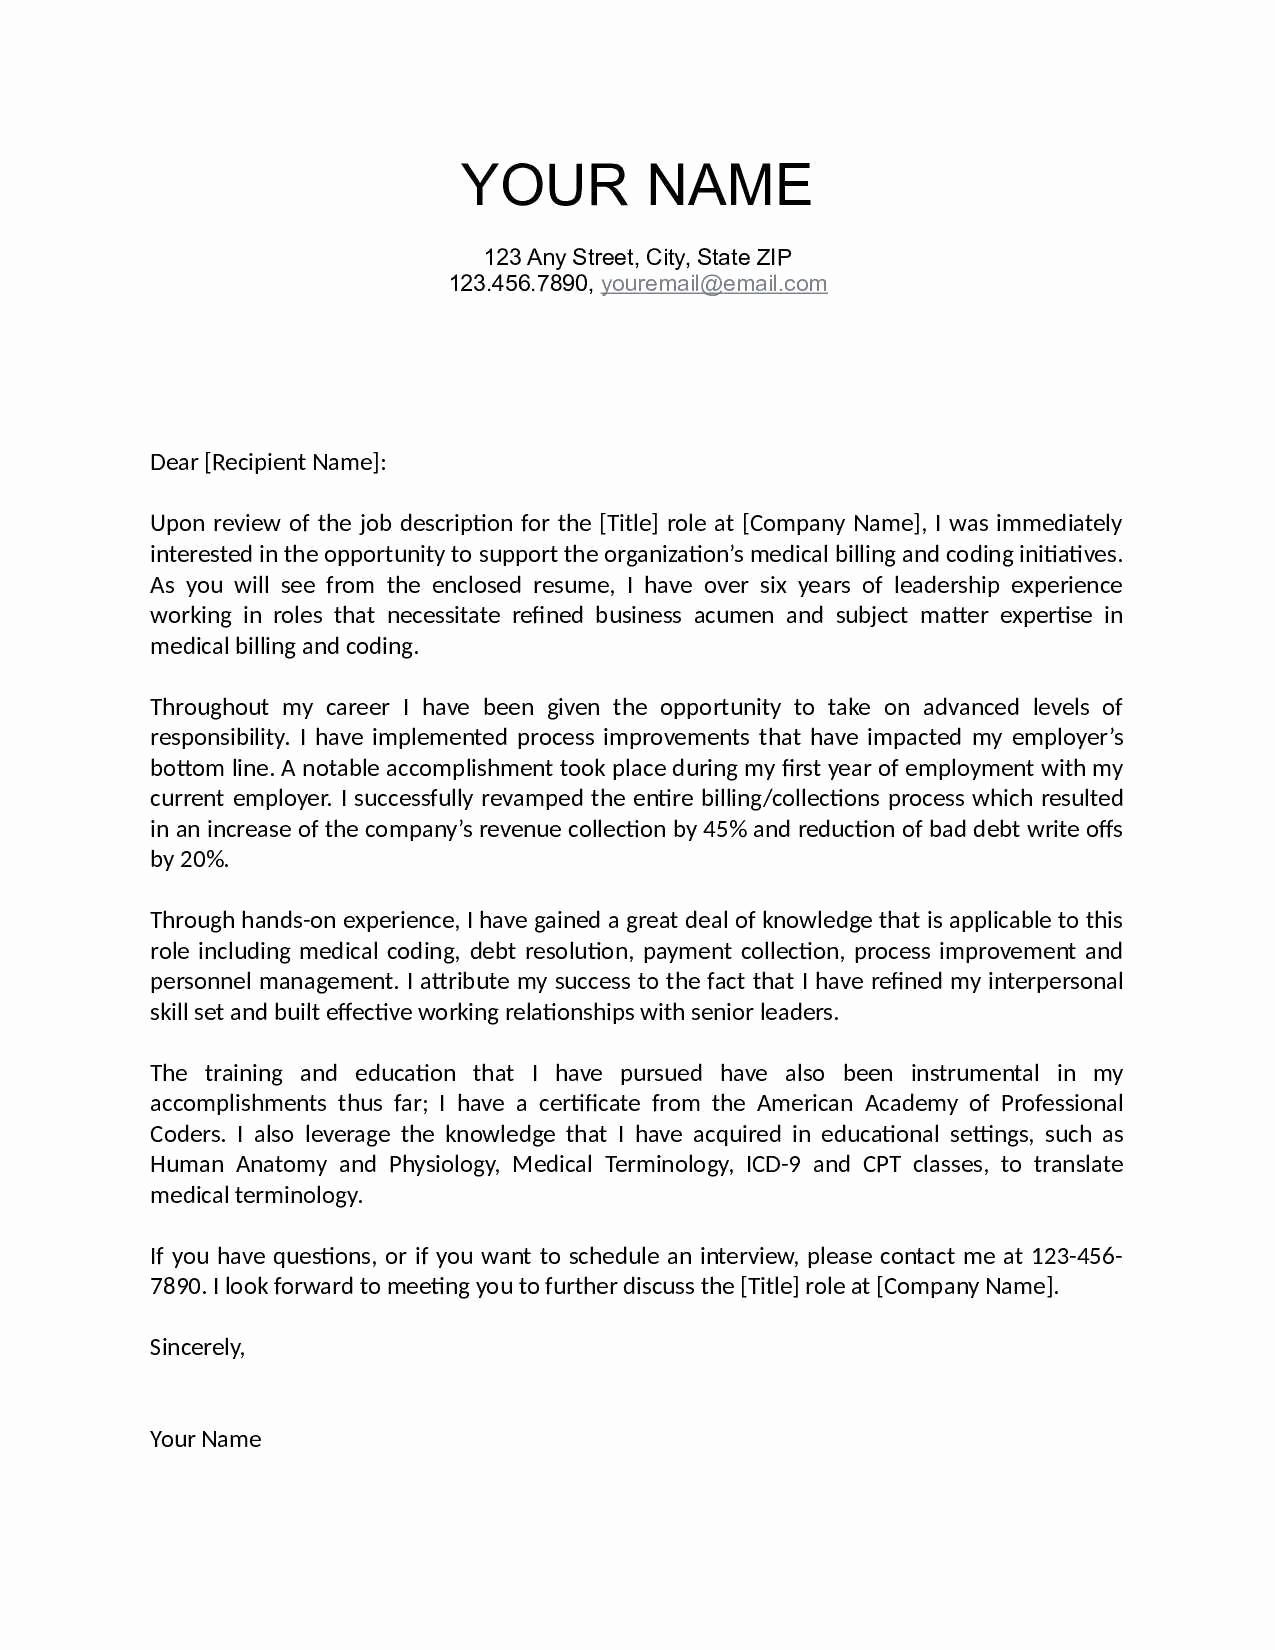 Pre Hire Letter Template - Writing A Good Cover Letter Beautiful Cover Letter Overseas Job New